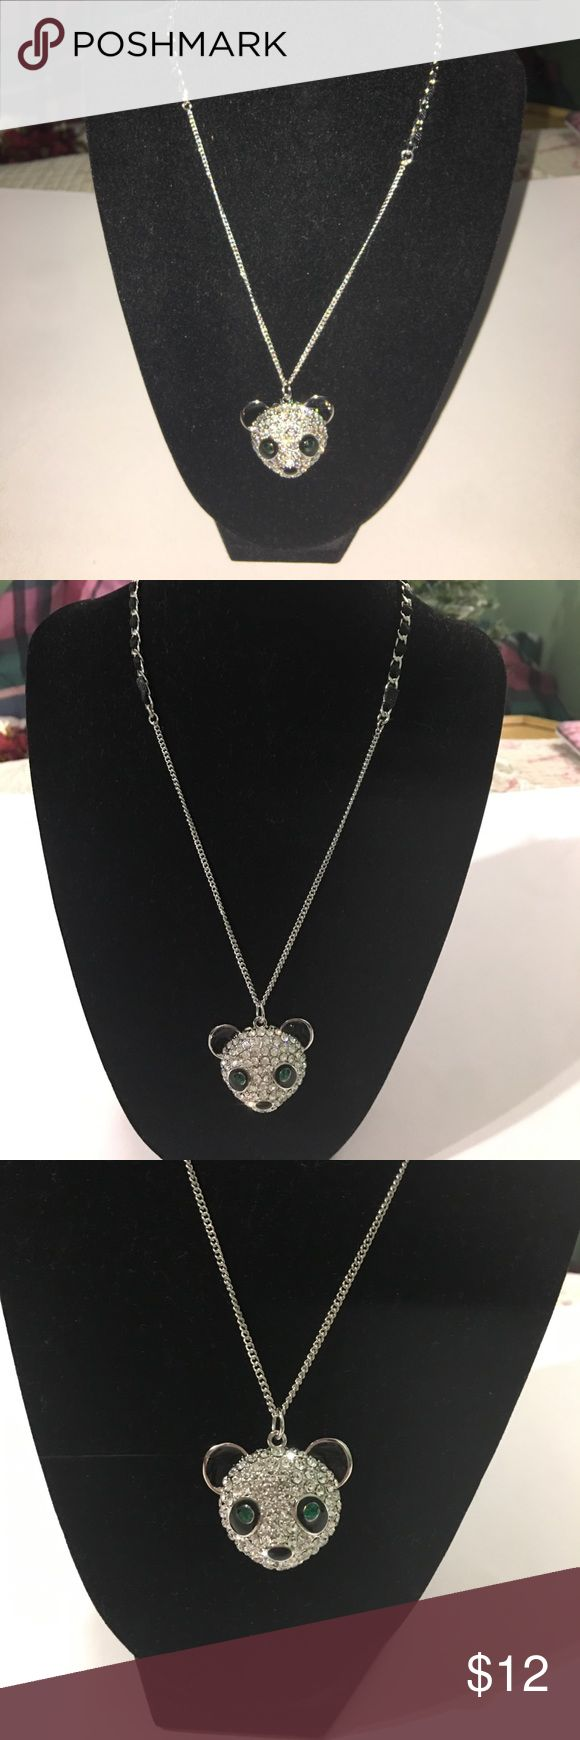 Park Lane Panda Necklace Park Lane Panda Necklace brand new with tags. Park Lane Jewelry Necklaces